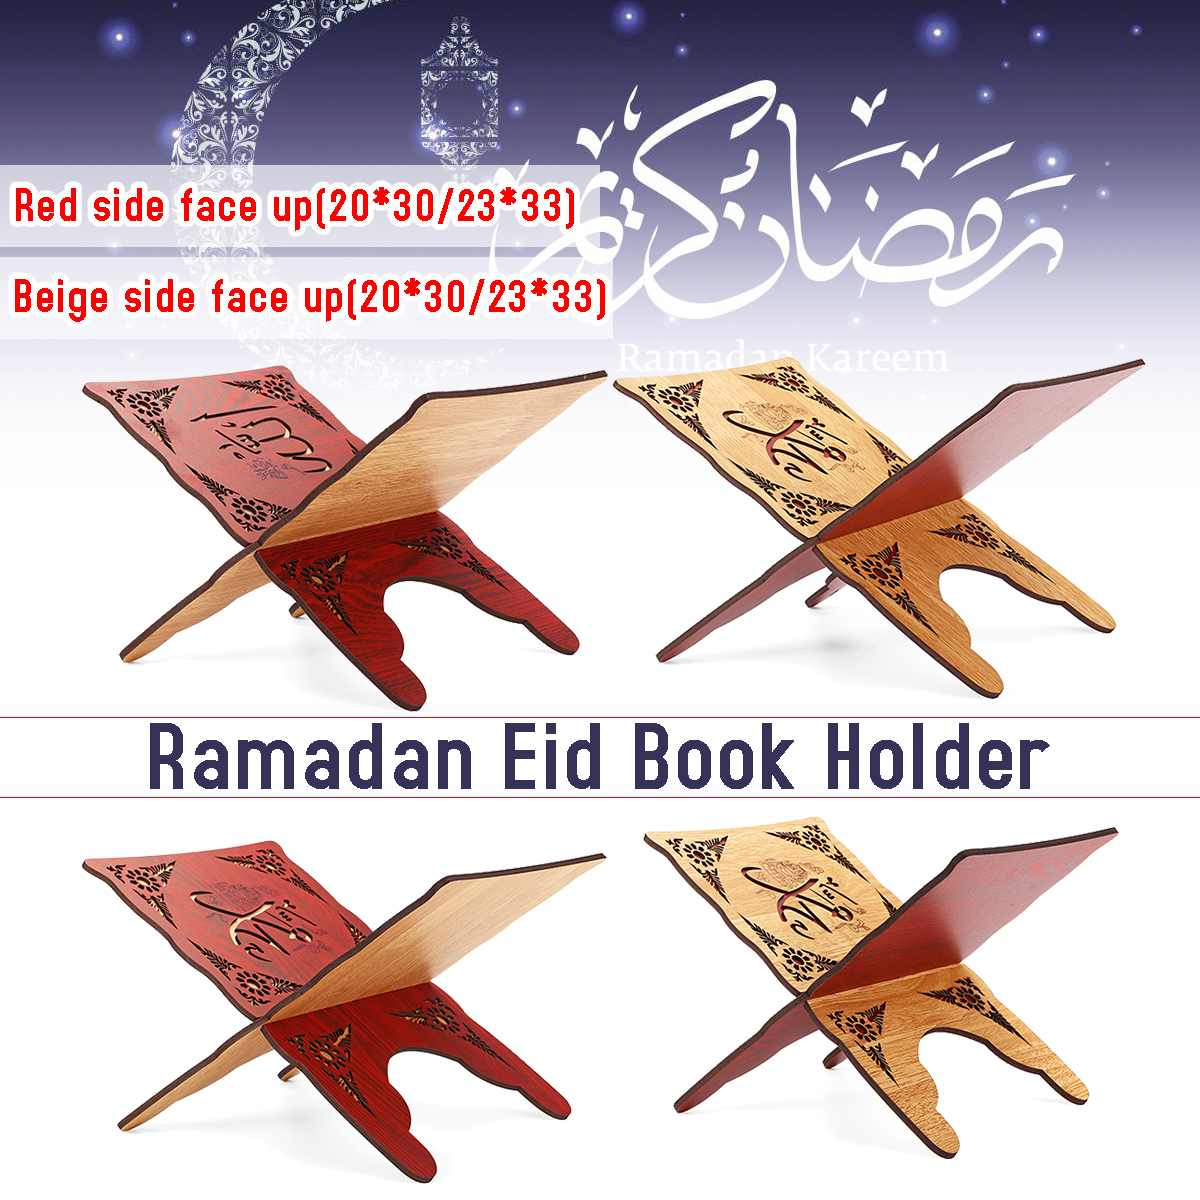 Ramadan Eid Wooden Bookshelf Book Library Shelf Stand Holder For Islamic Prayer Arts Crafts Reading Frame 20x30/23x33cm StorageRamadan Eid Wooden Bookshelf Book Library Shelf Stand Holder For Islamic Prayer Arts Crafts Reading Frame 20x30/23x33cm Storage